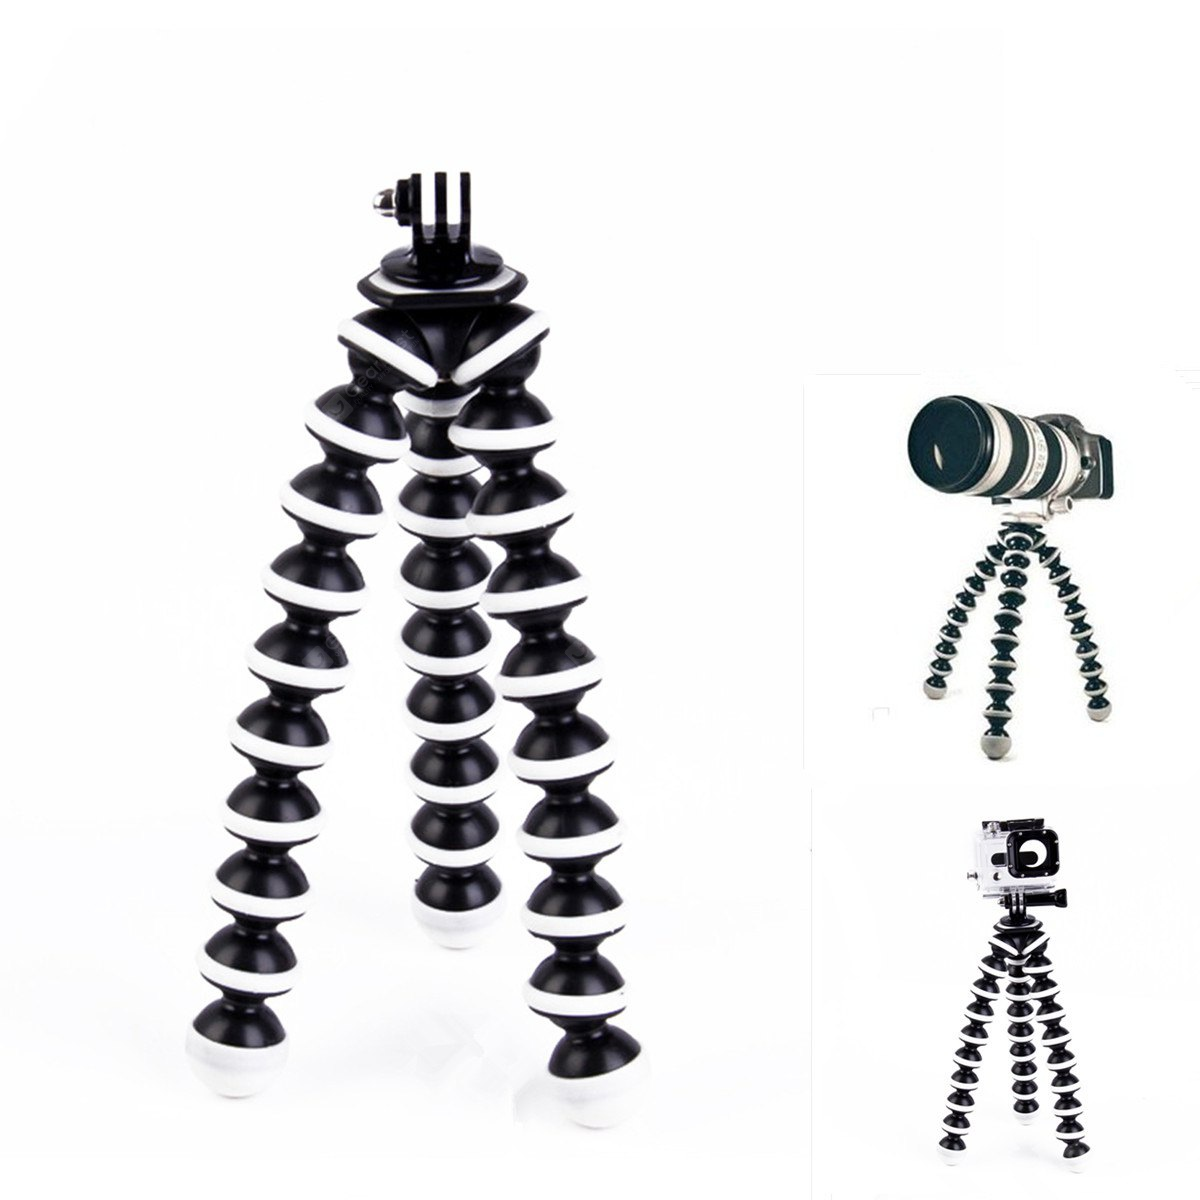 2-in-1 Action Camera Octopus Multi-Function Tripod Mounted Stand